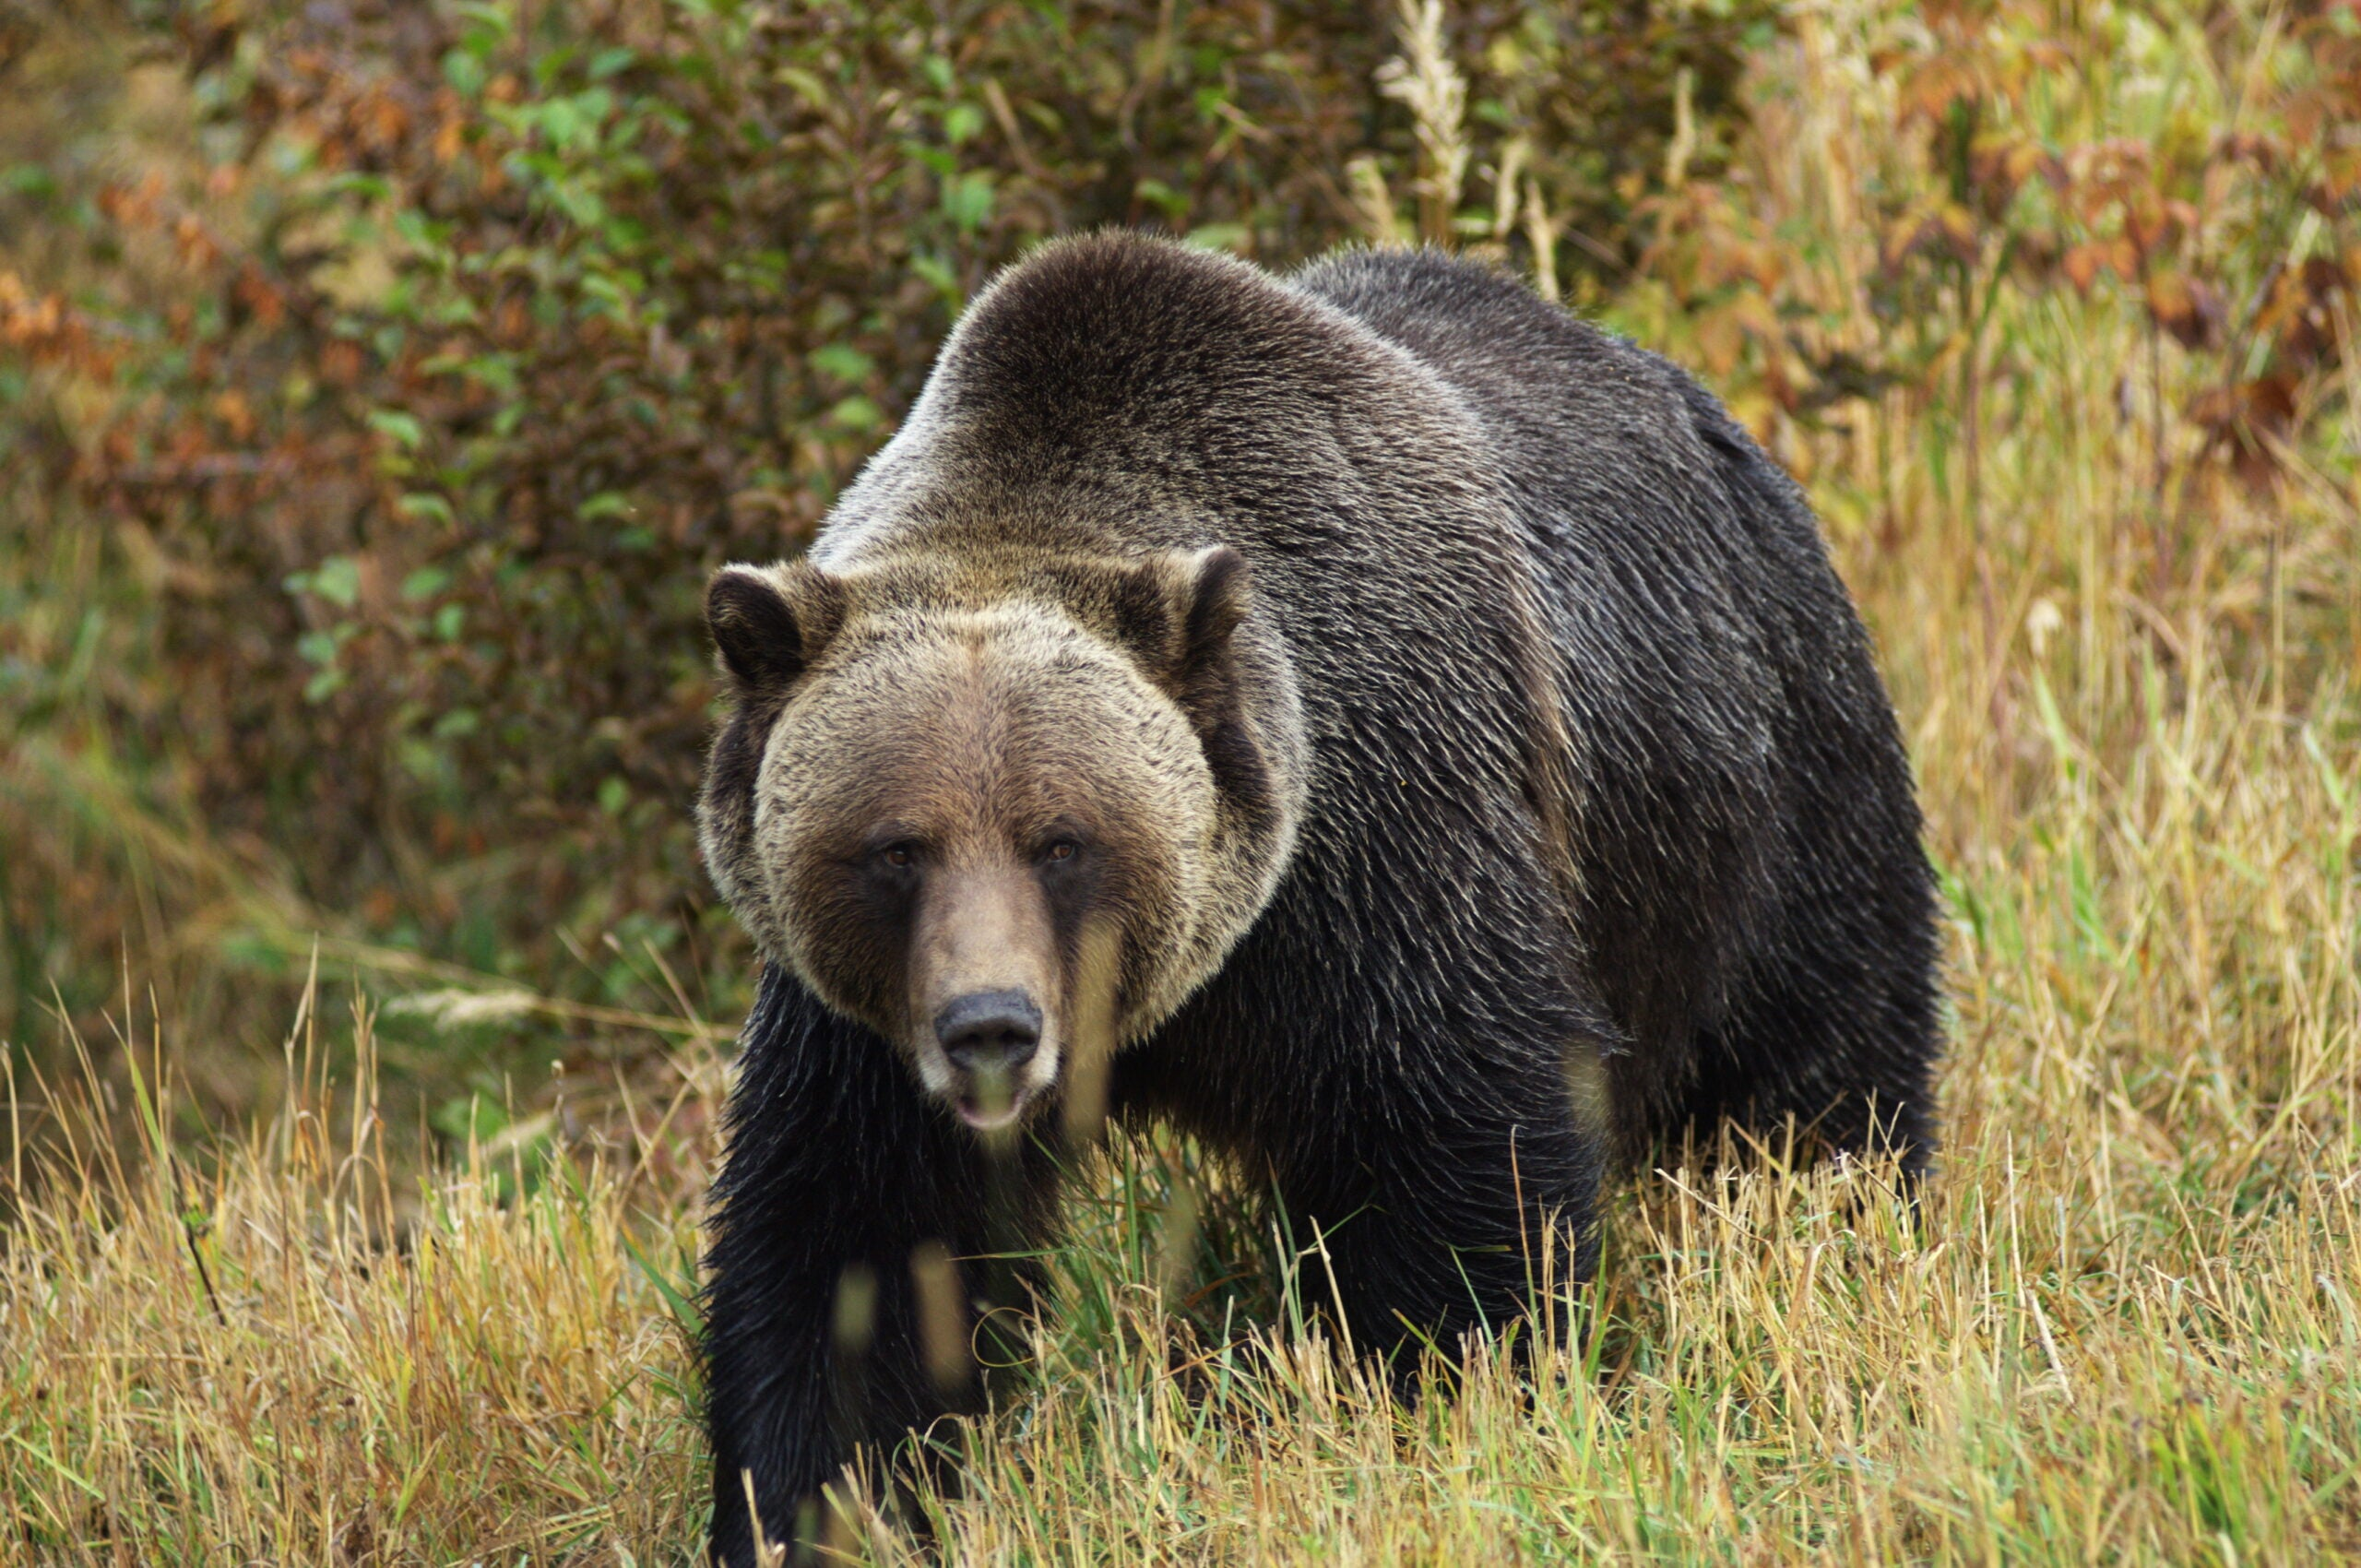 An Expert's Guide on How to Stay Alive in Grizzly Bear Country